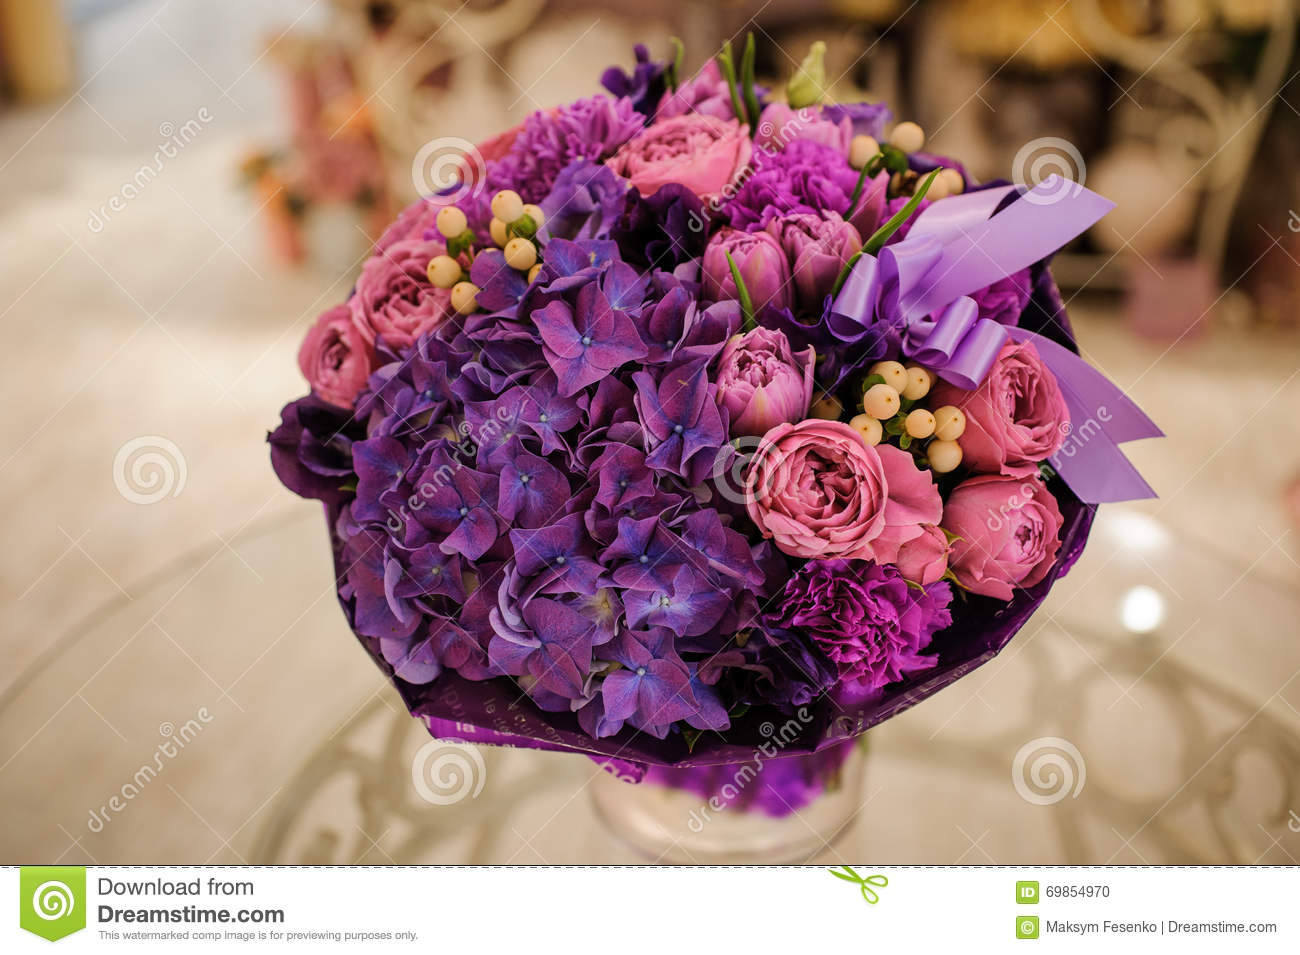 Purple Flower Bouquet Composition On Table Stock Photo - Image of ...